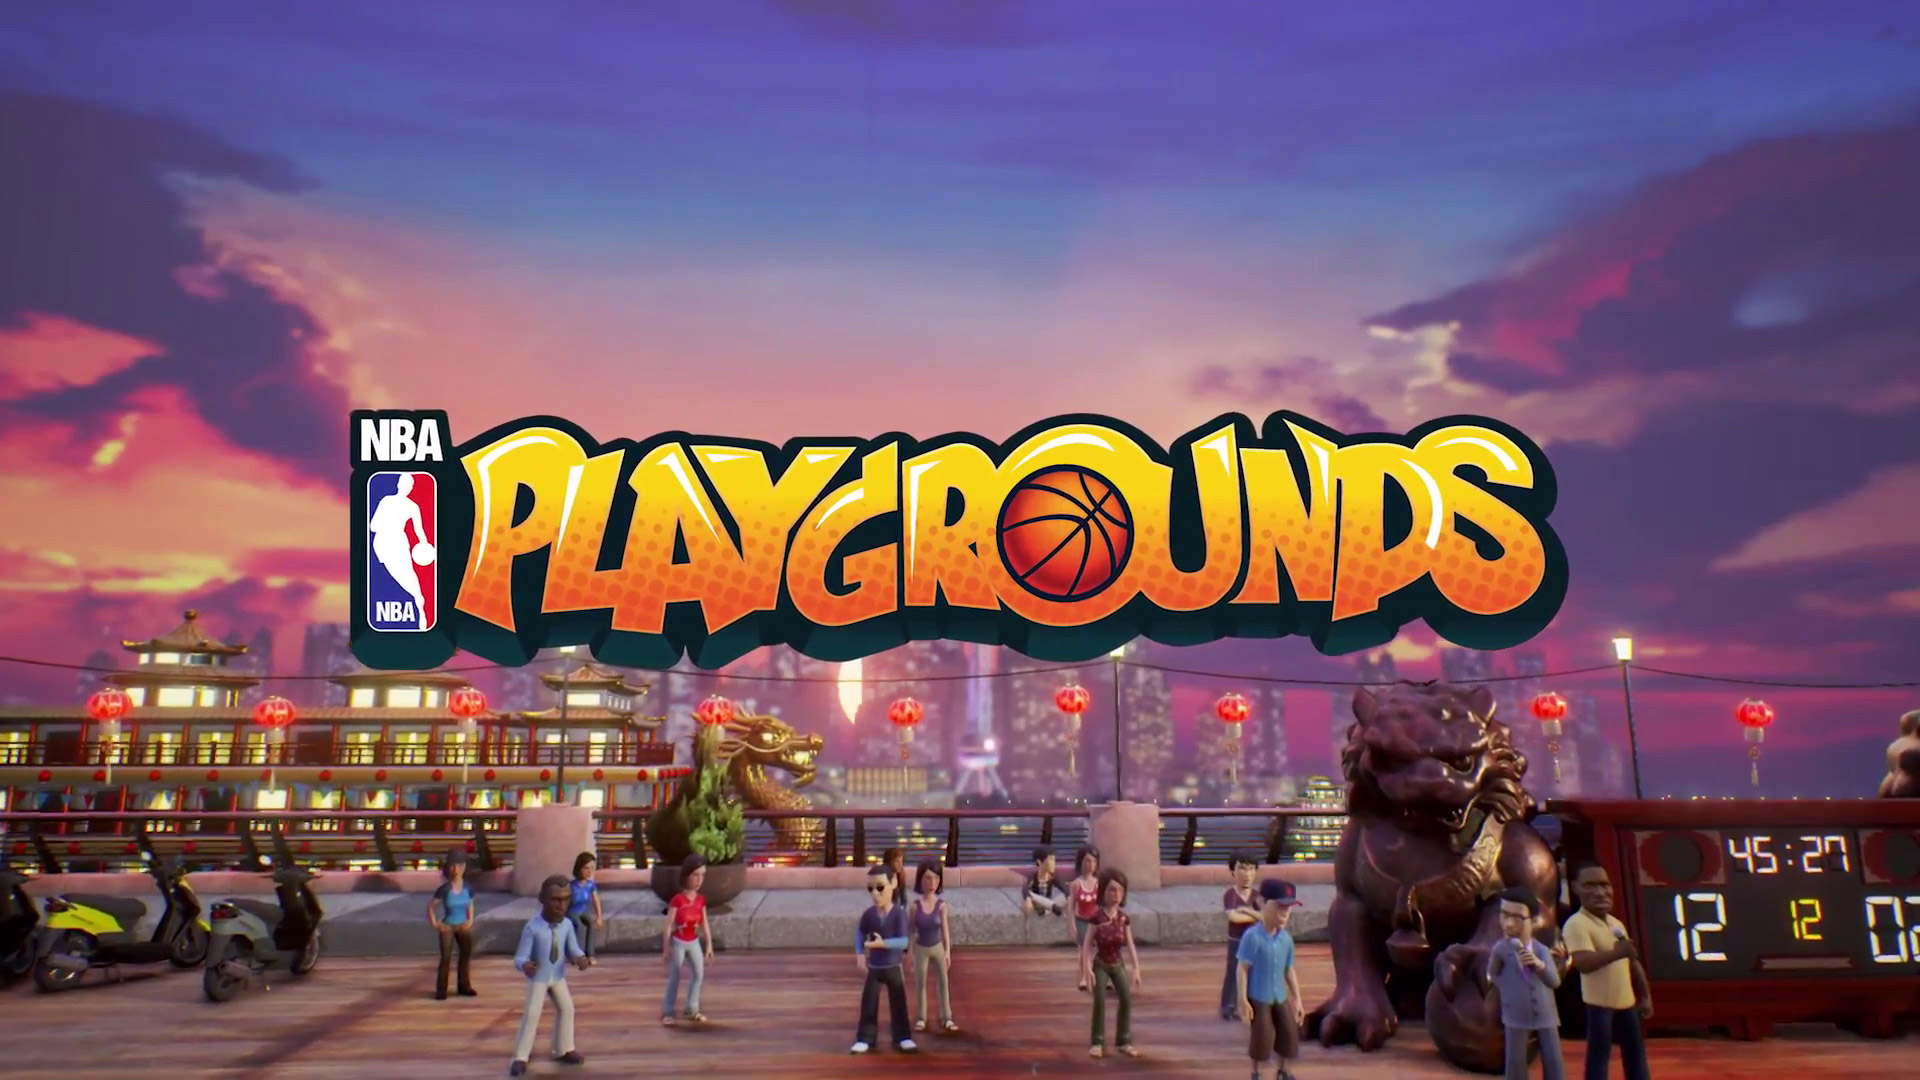 NBA Playgrounds Wallpaper in 1920x1080